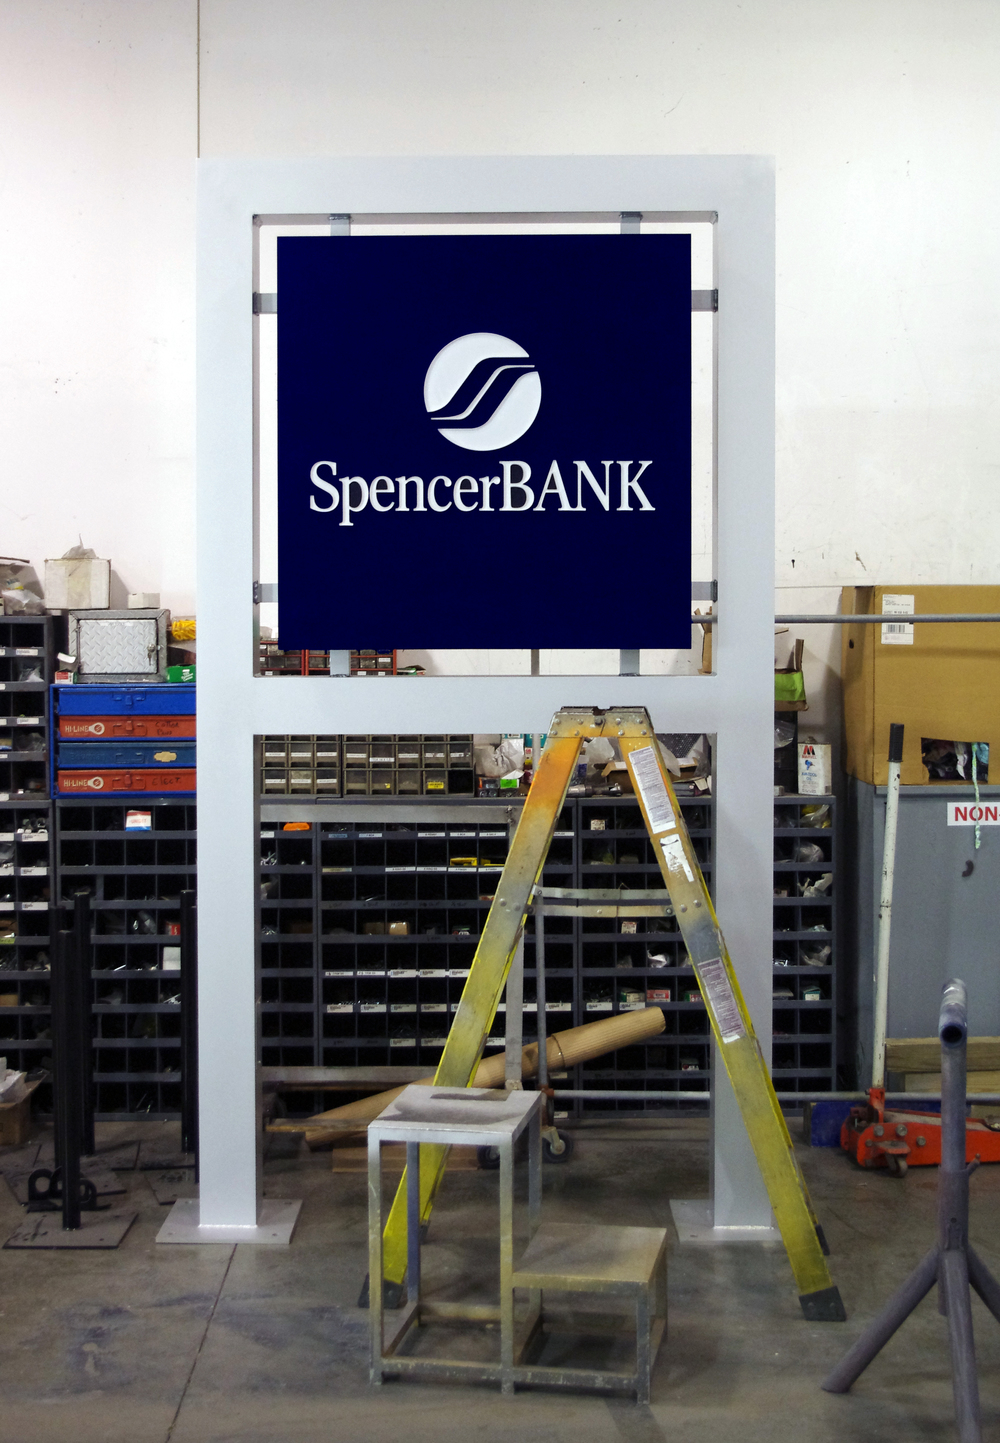 Spencer_Bank_4.jpg